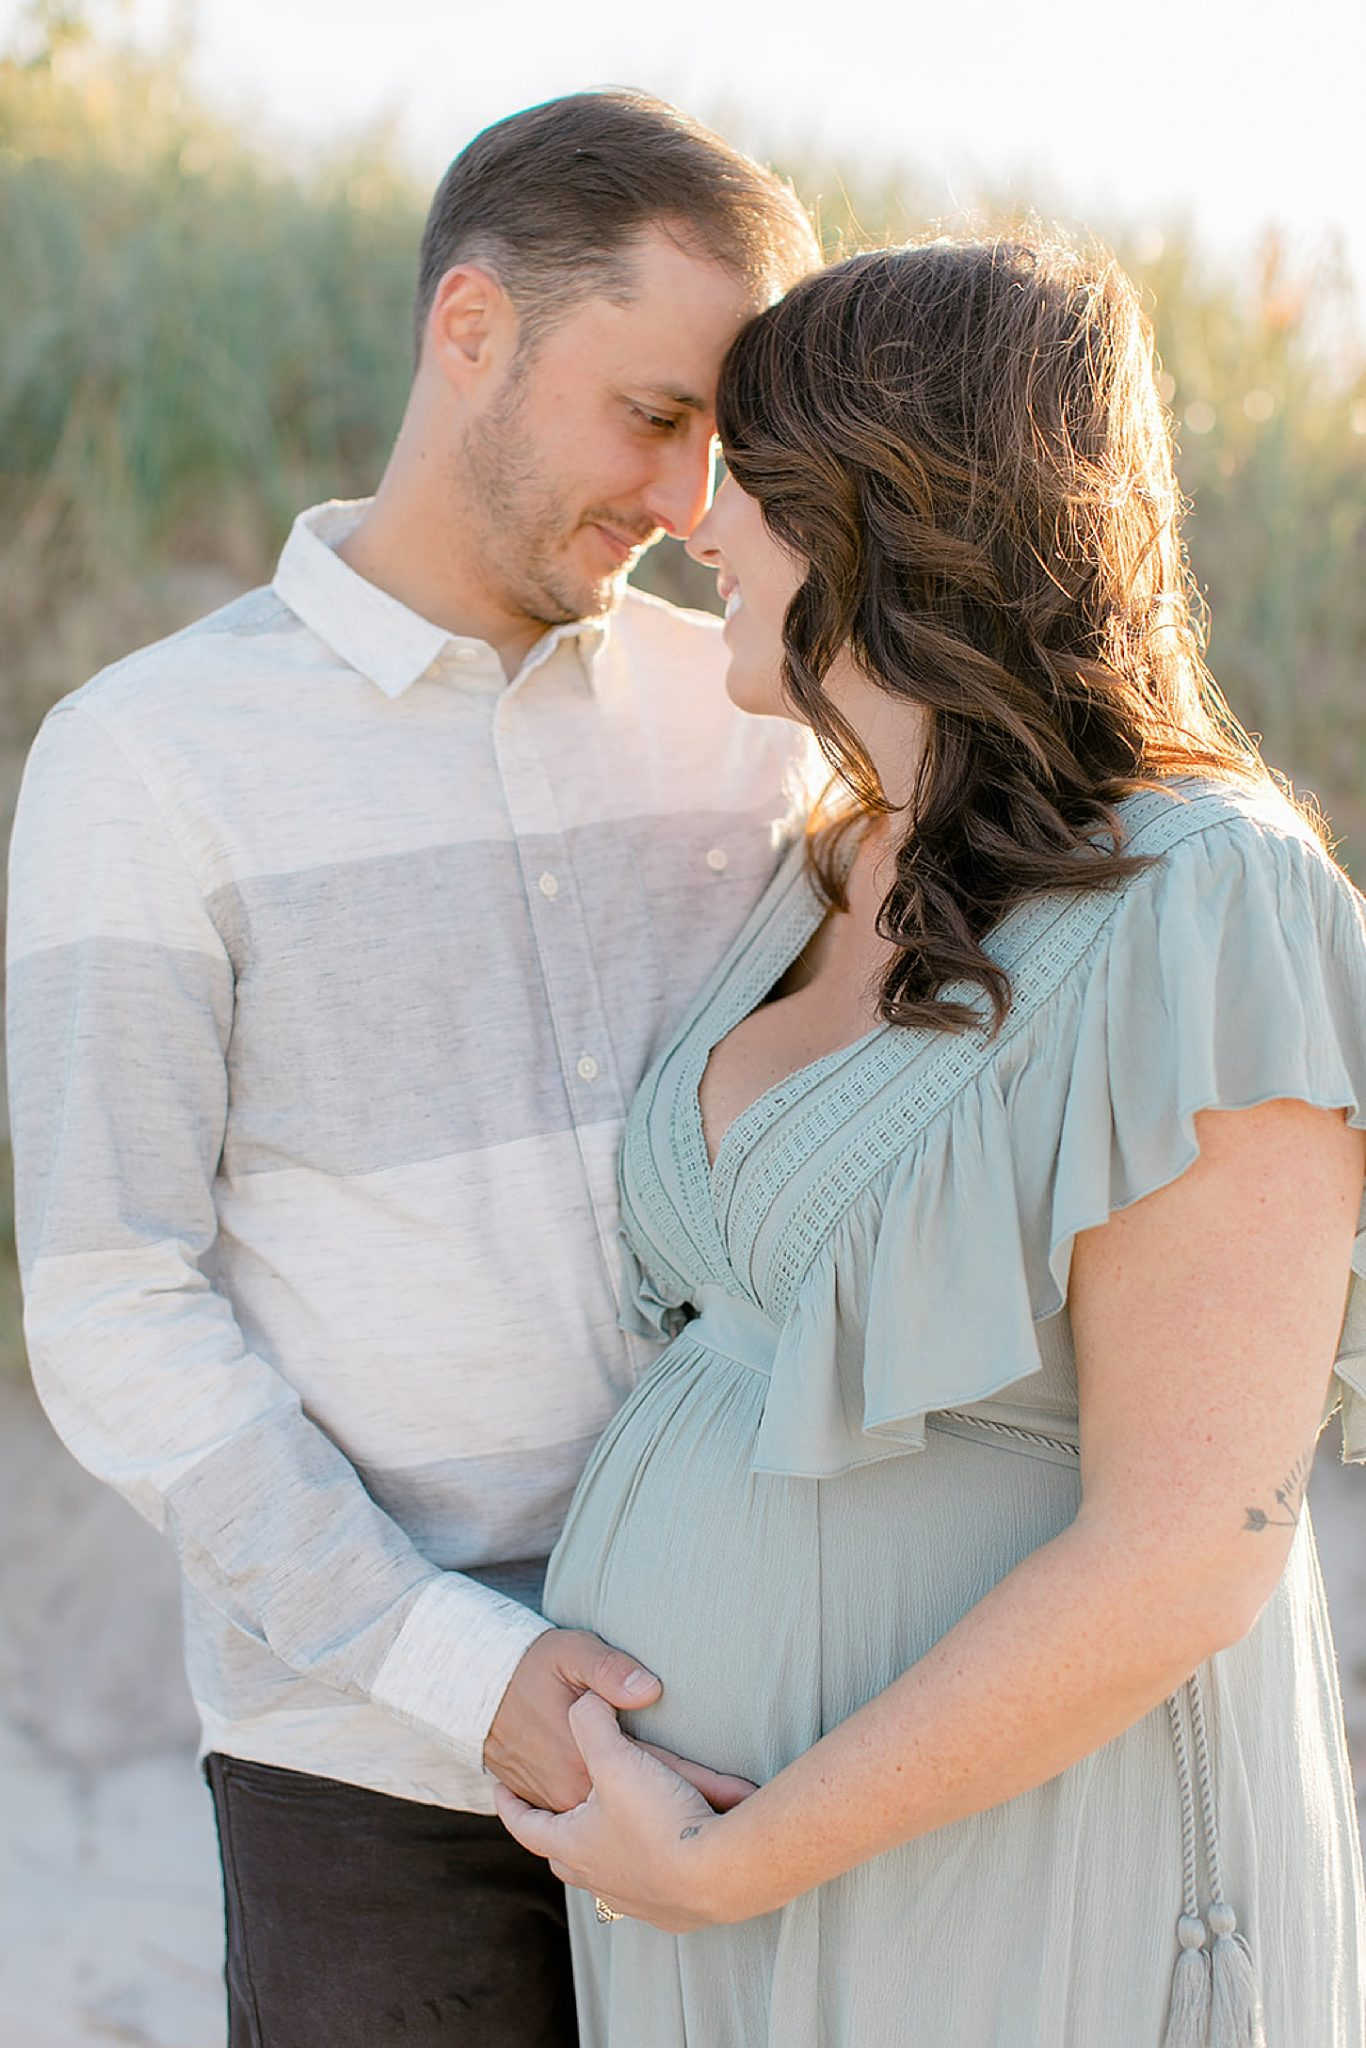 Ocean City NJ Maternity Portrait Photography by Magdalena Studios 0003 scaled